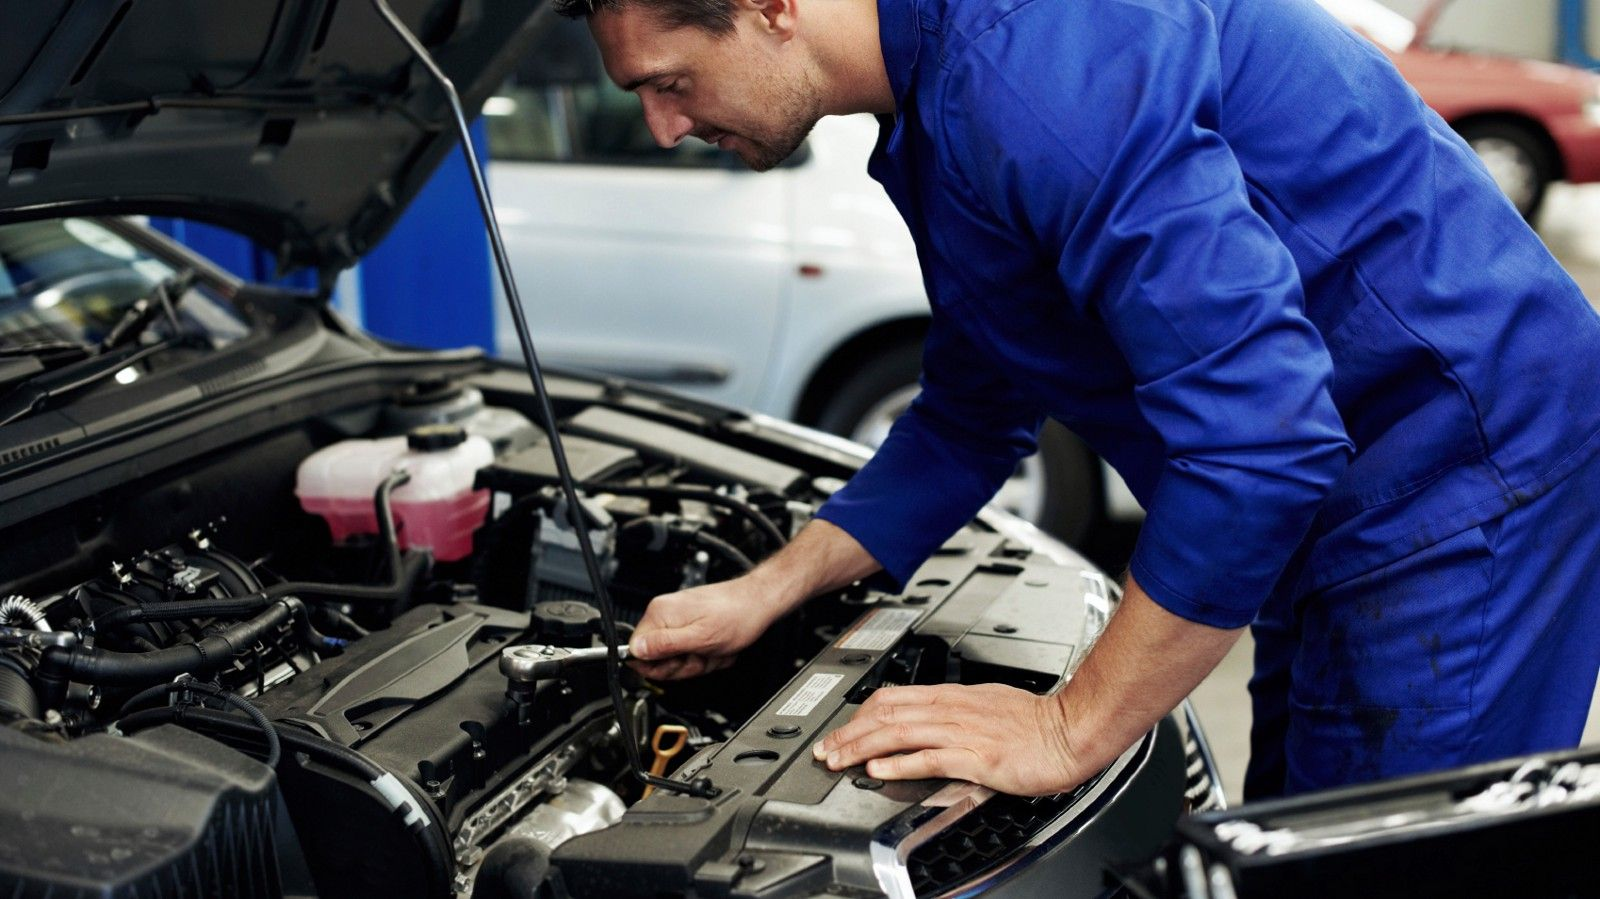 Is Your Car Being Repaired By A Mechanic Or Is At The Dealership Call Dime Car Rentals Now At 905 543 1170 Car Repair Service Mobile Mechanic Car Mechanic